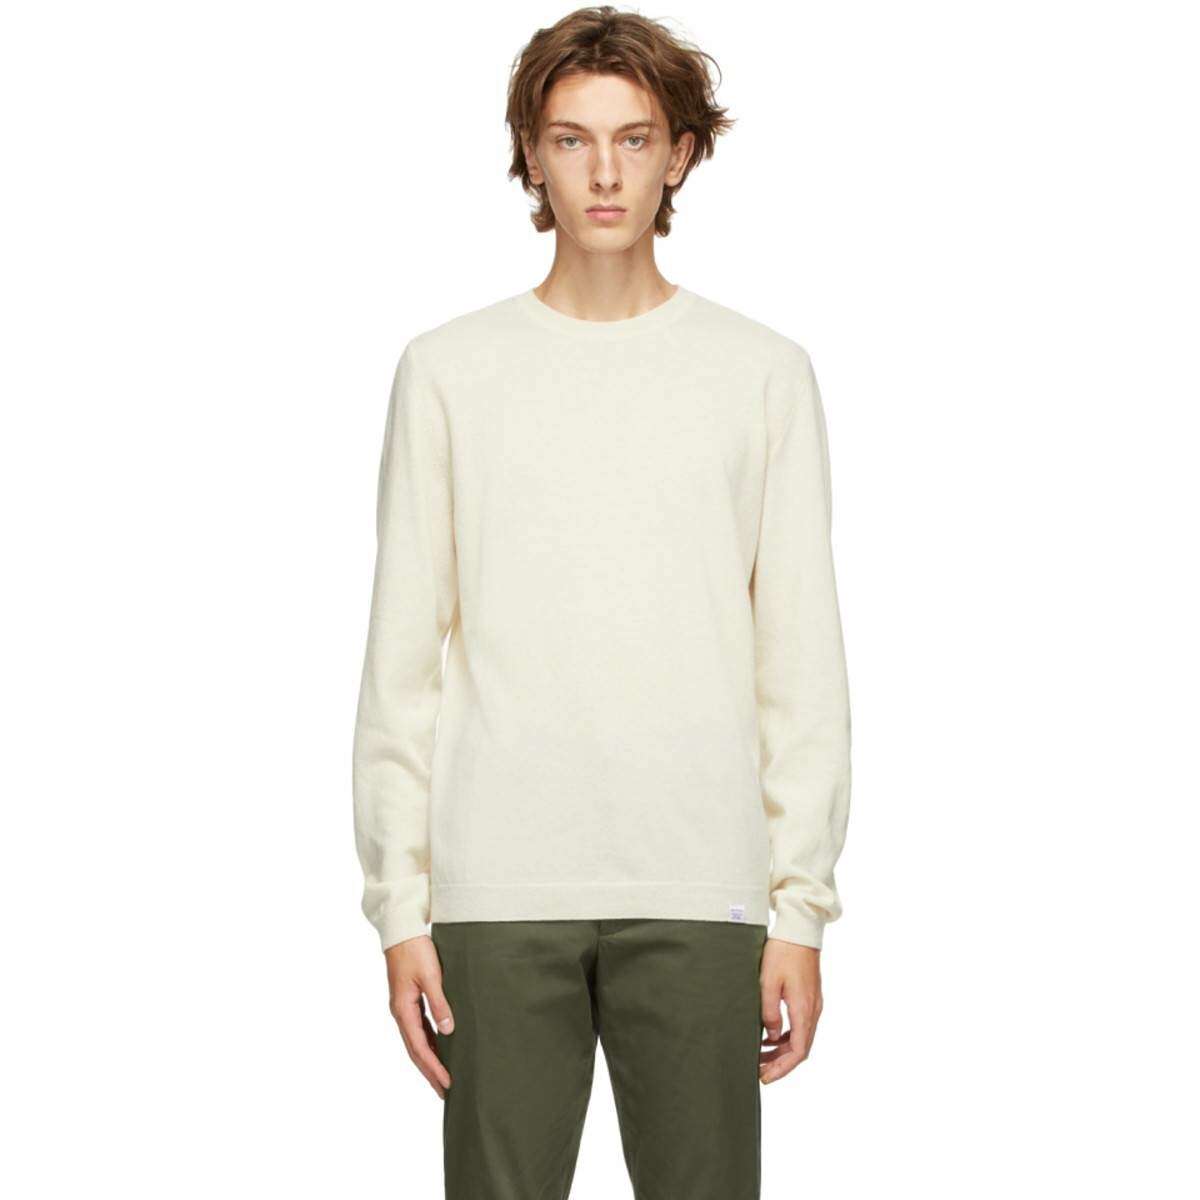 Norse Projects Off-White Light Wool Sigfred Sweater Ssense USA MEN Men FASHION Mens KNITWEAR